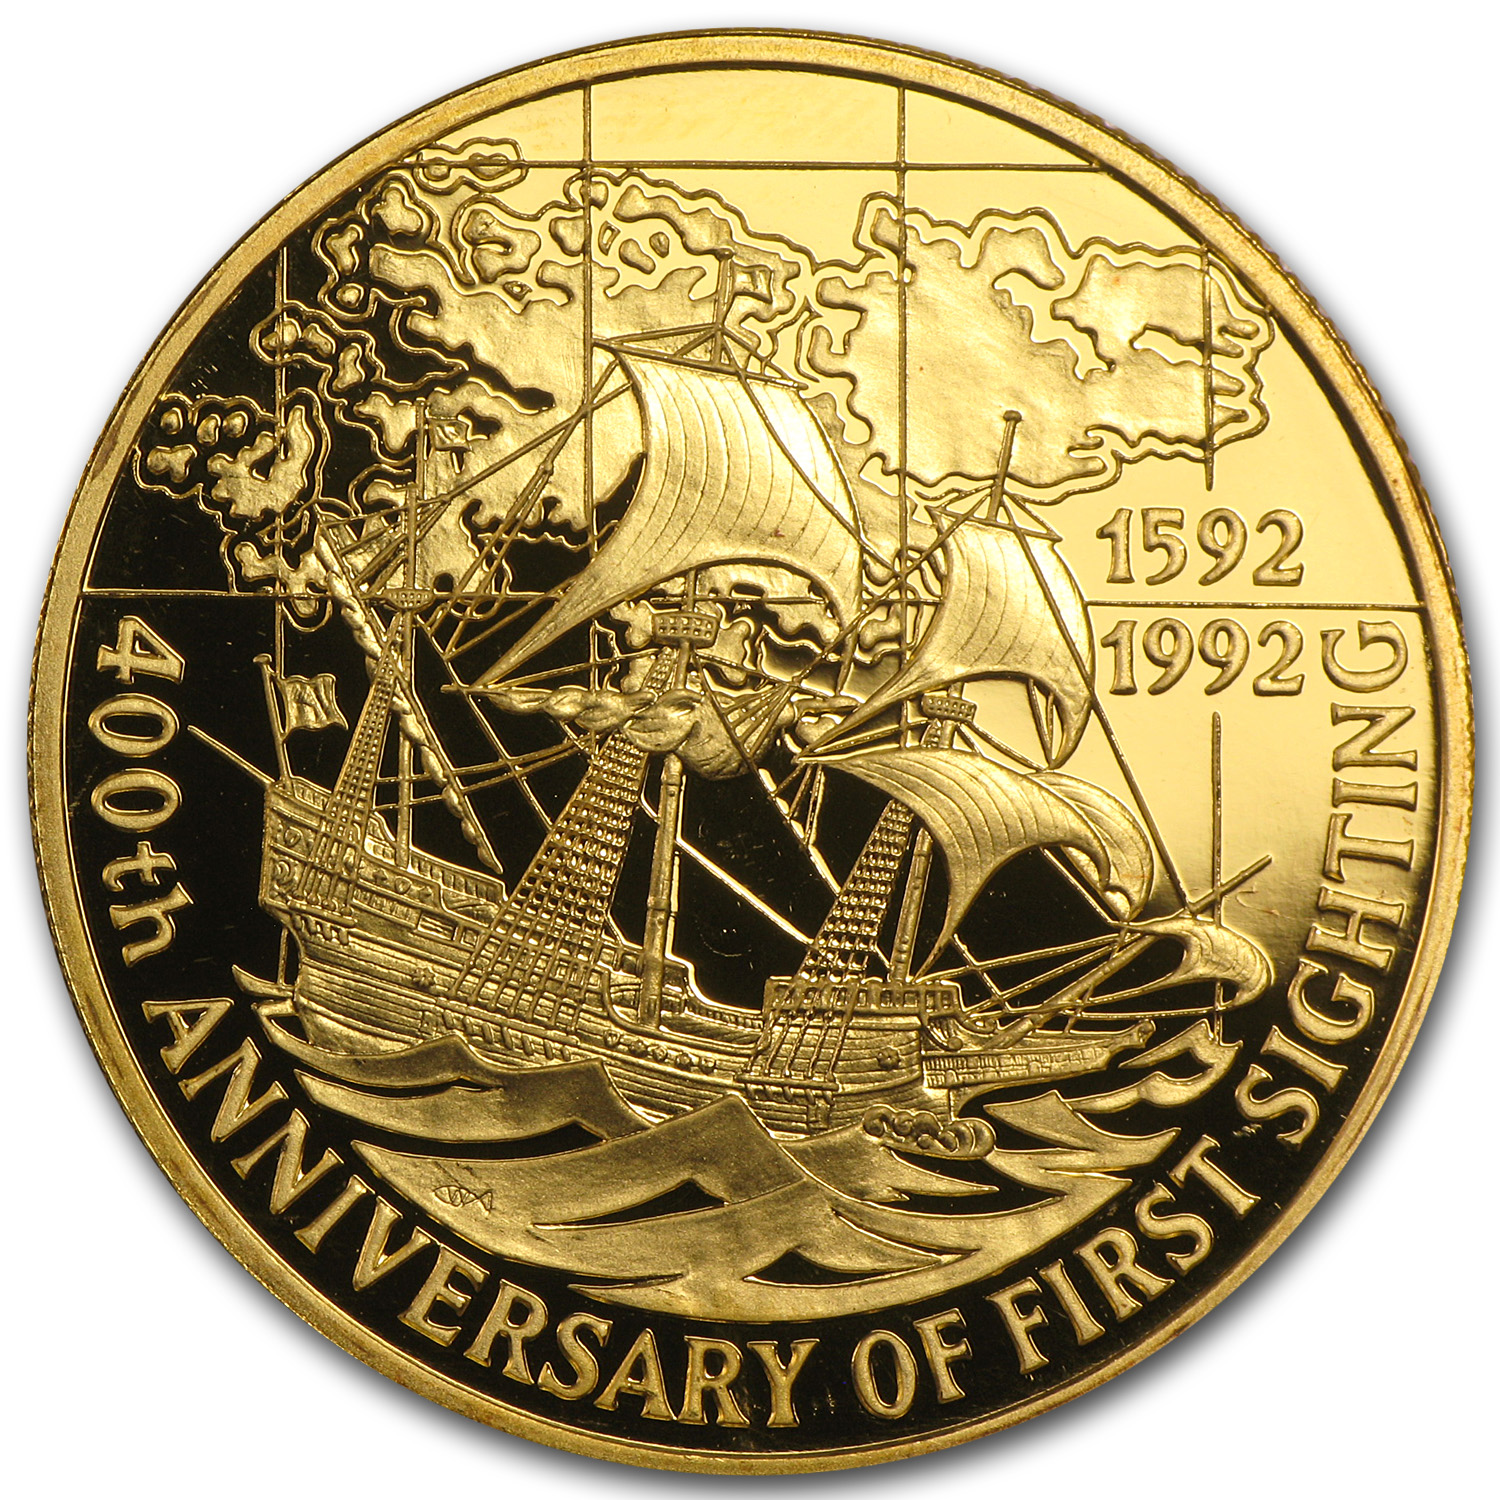 1992 Falkland Islands Gold 100 Pounds Proof